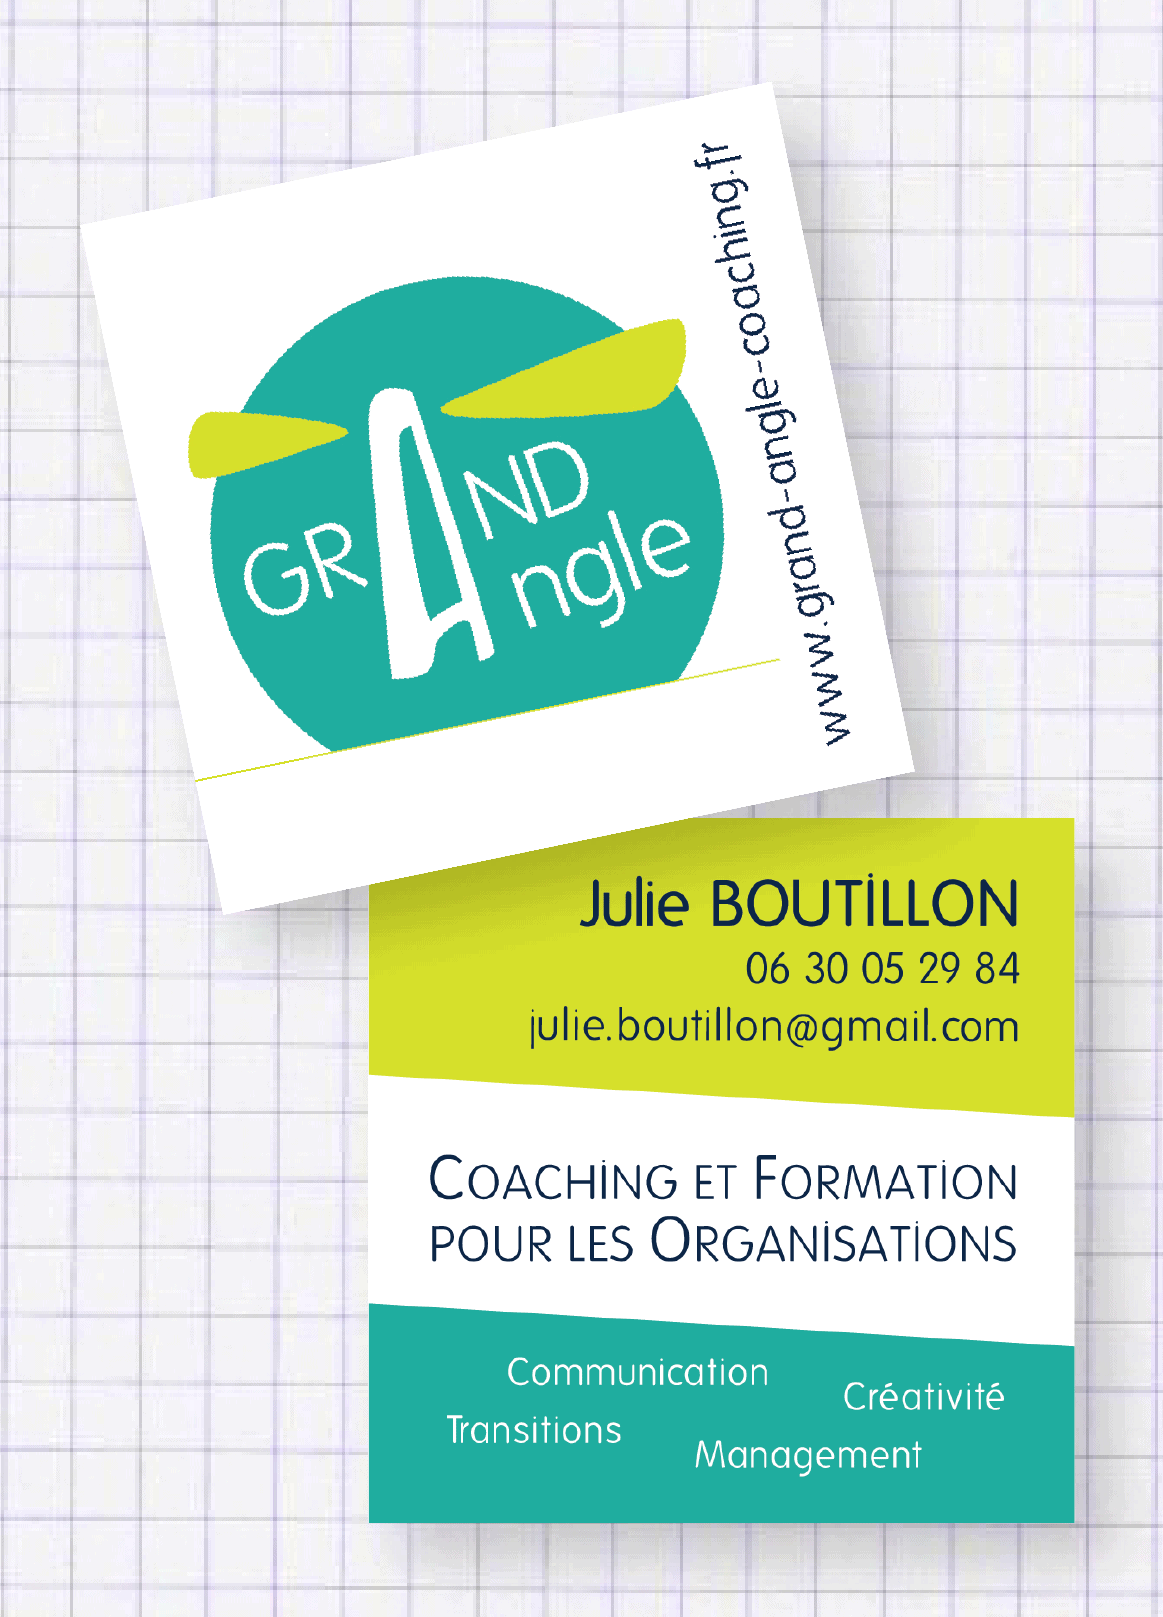 Grand Angle - Coaching // Julie Boutillon